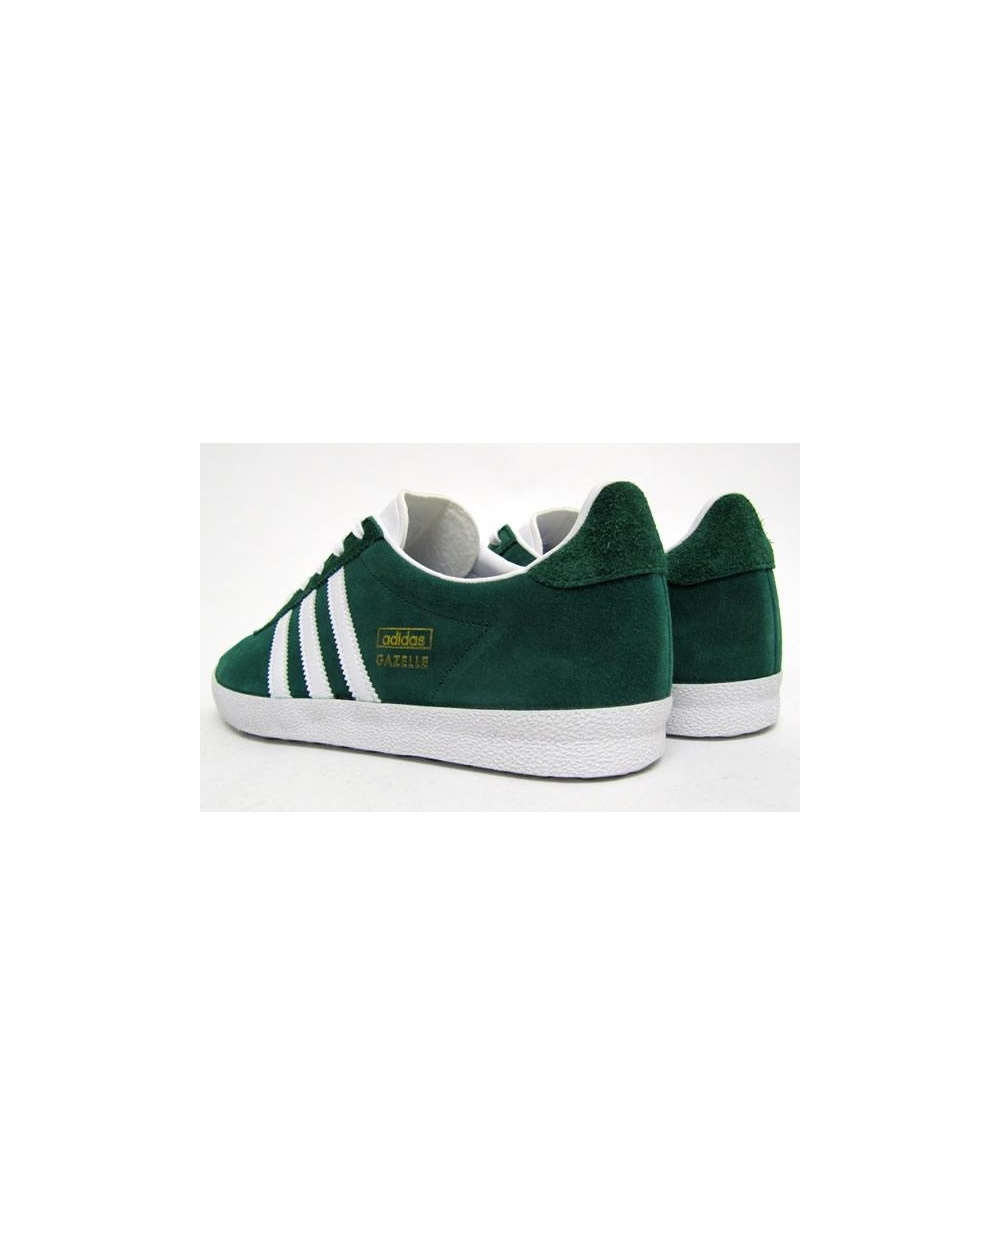 Adidas Gazelle Og Trainers In Forest Green/White